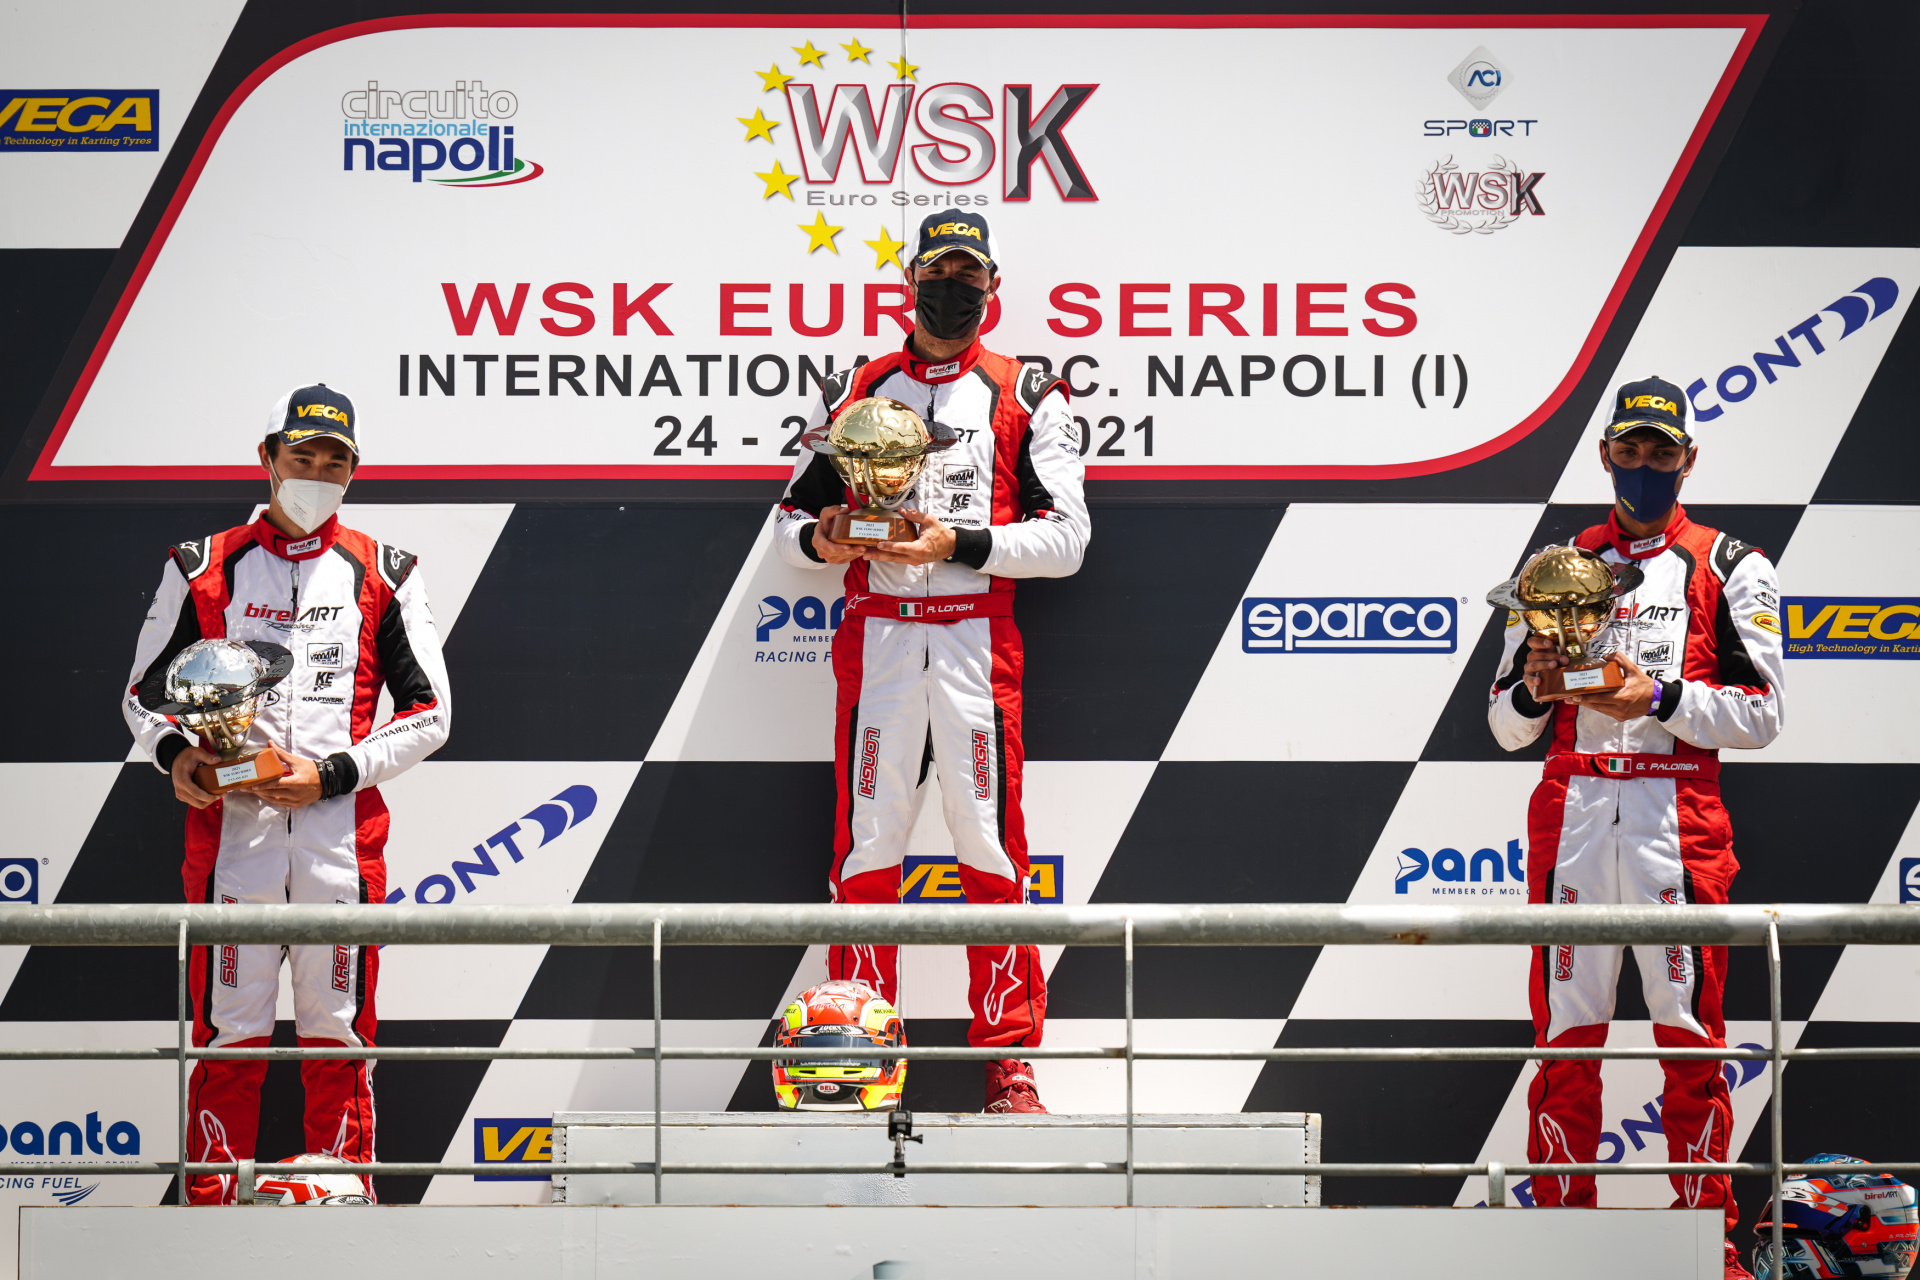 Another triple win in the 2021 WSK Euro Series